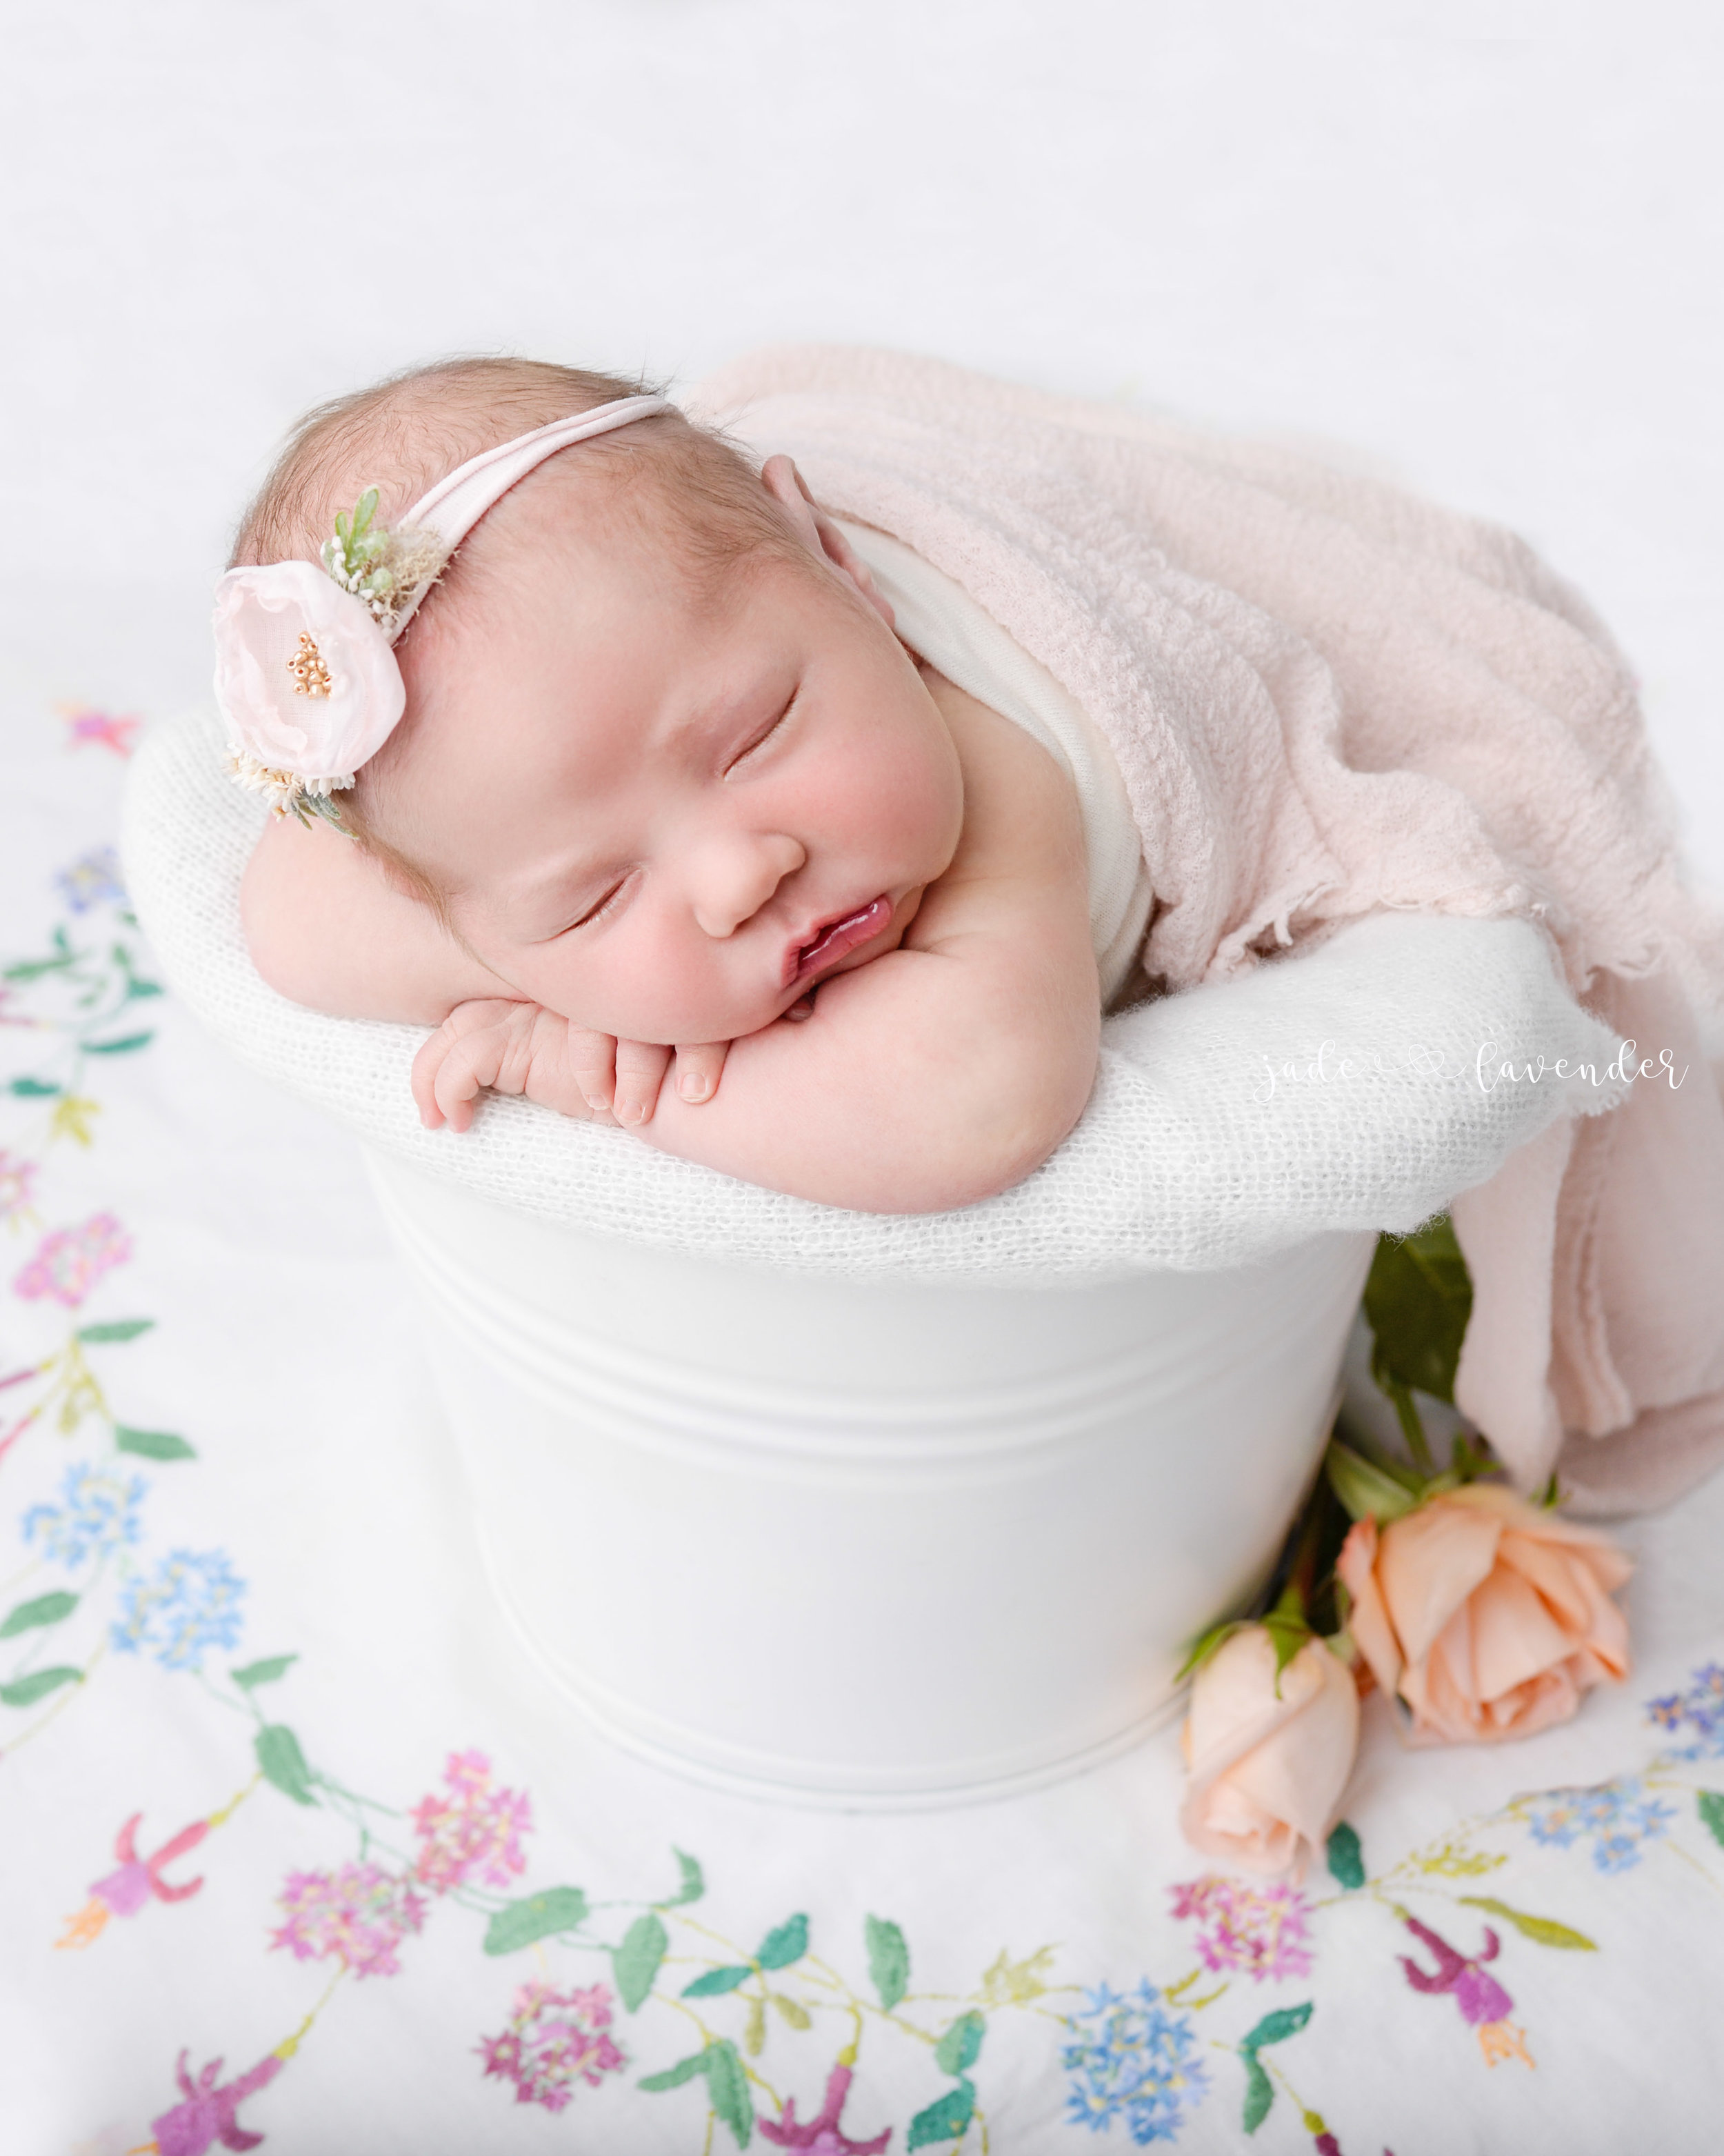 newborn-photography-baby-images-infant-photos-girl-floral-spokane-washington (6 of 6).jpg